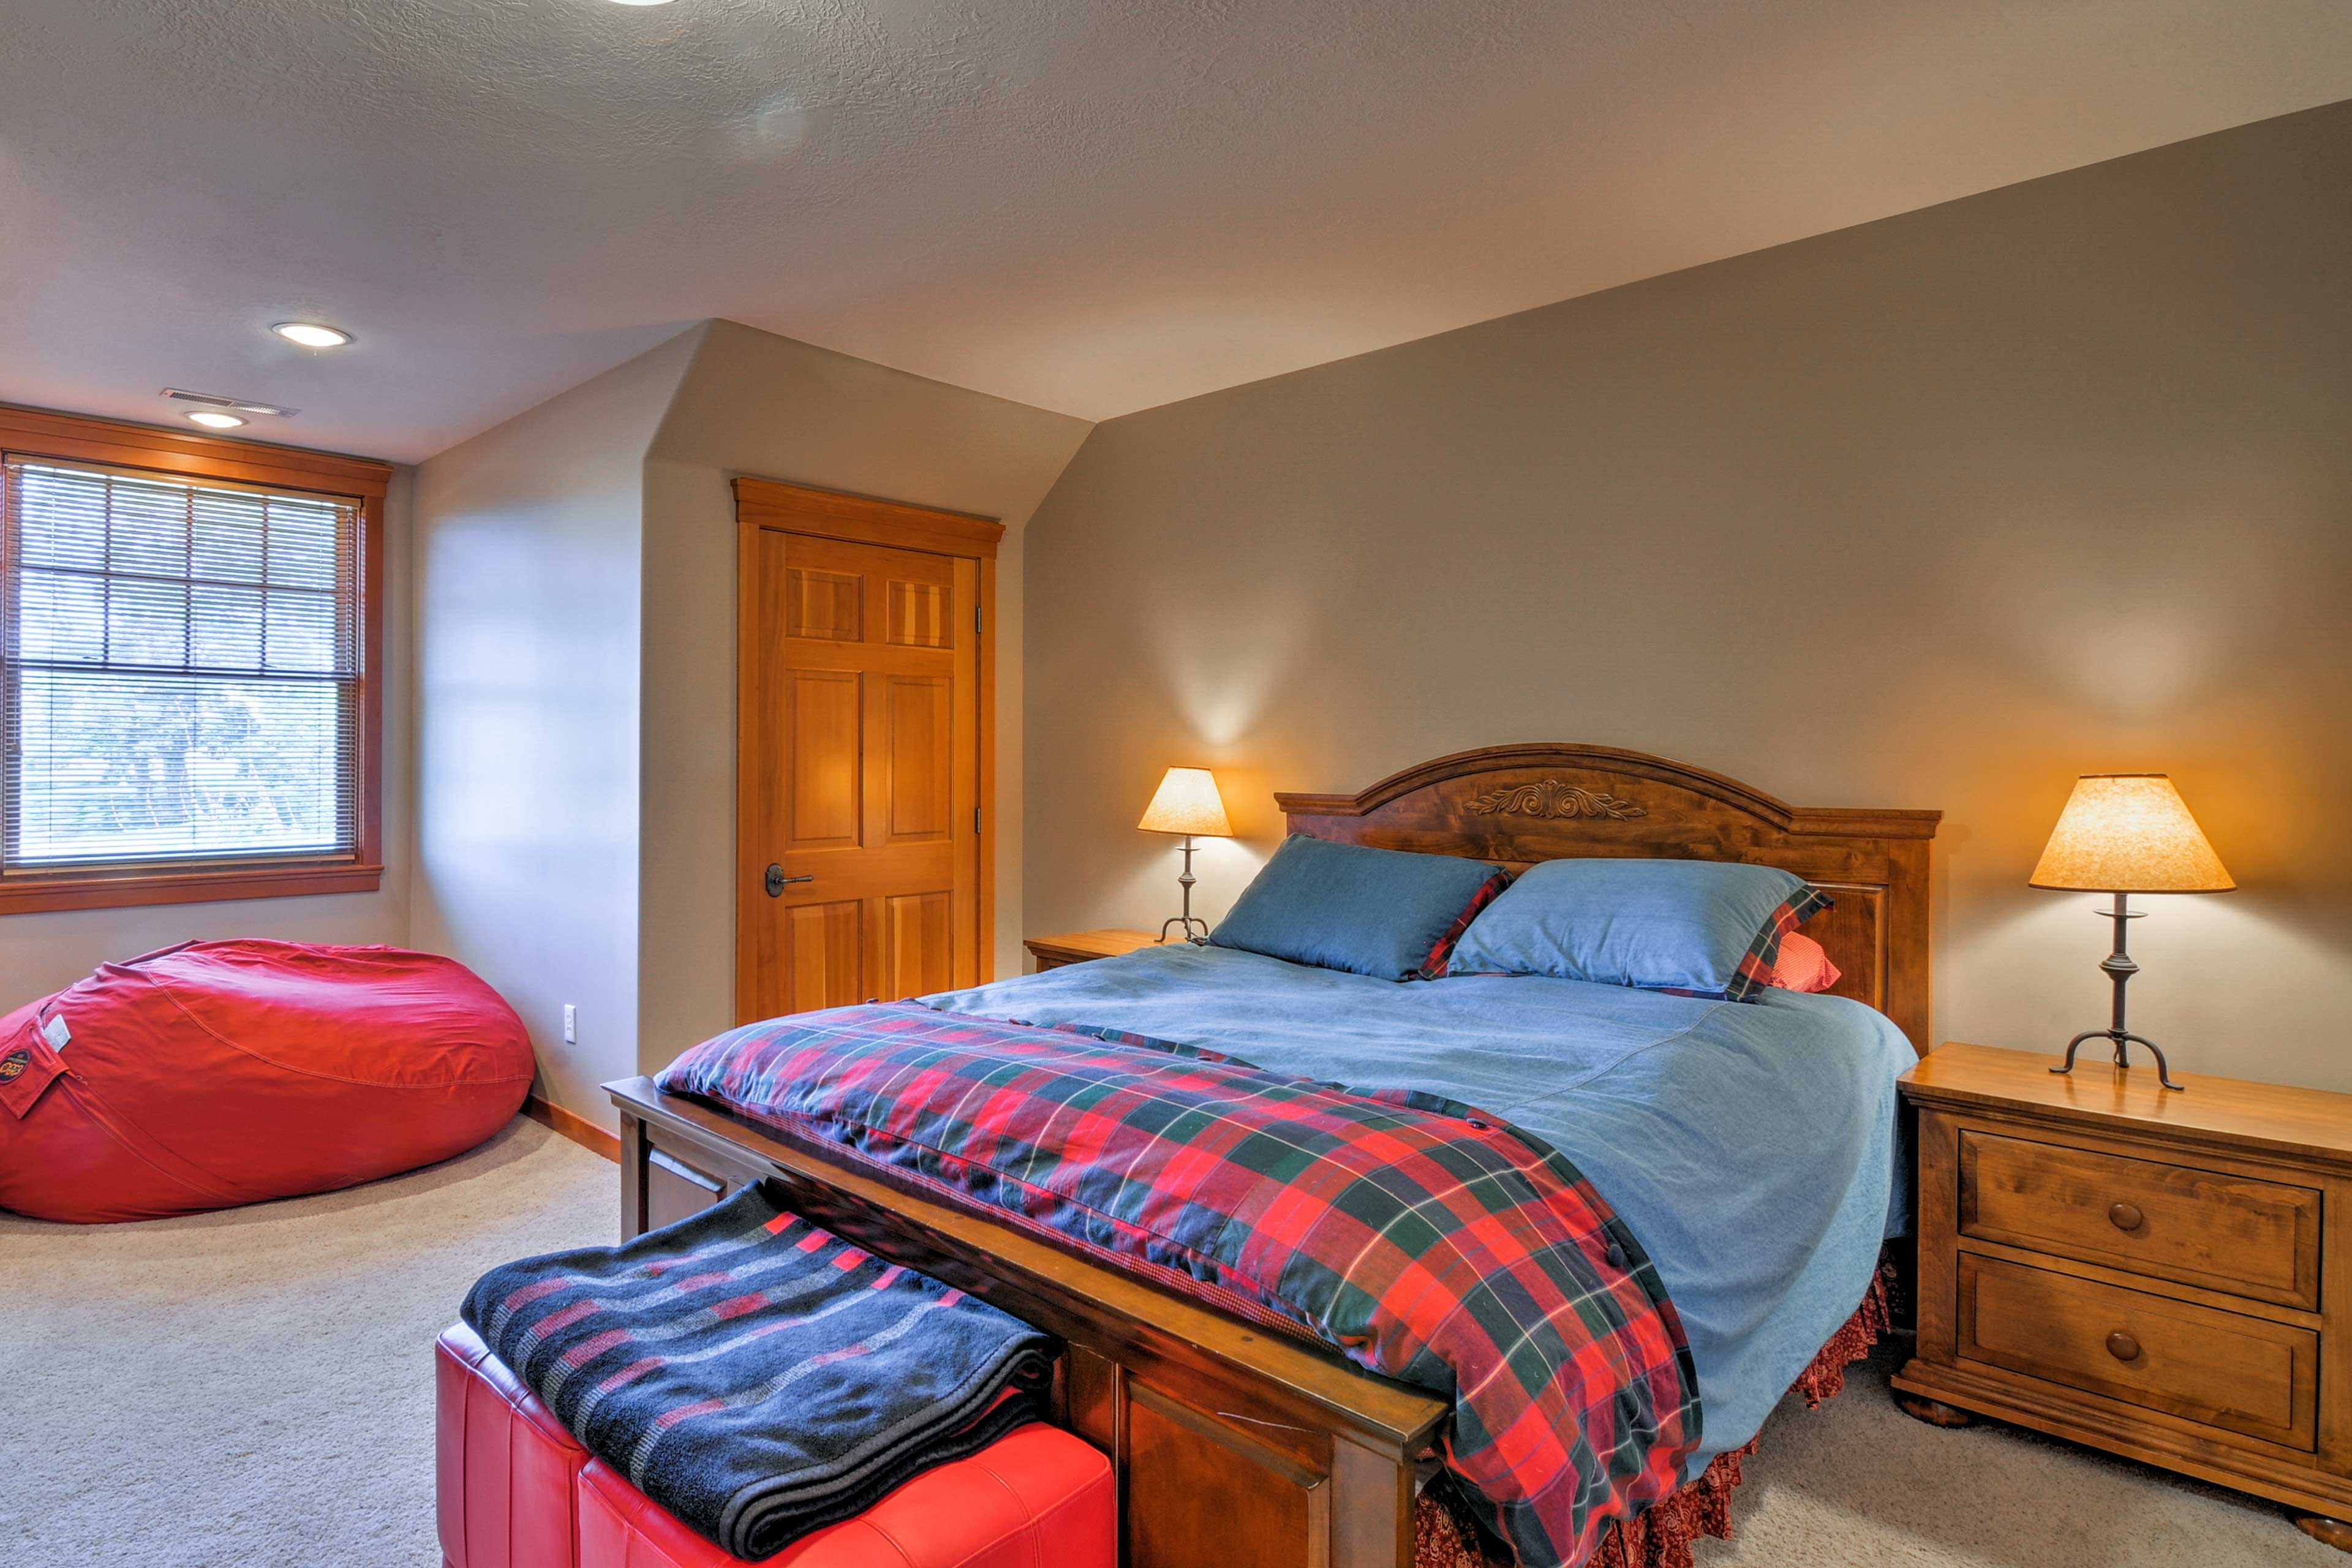 The second bedroom includes a queen bed for 2.